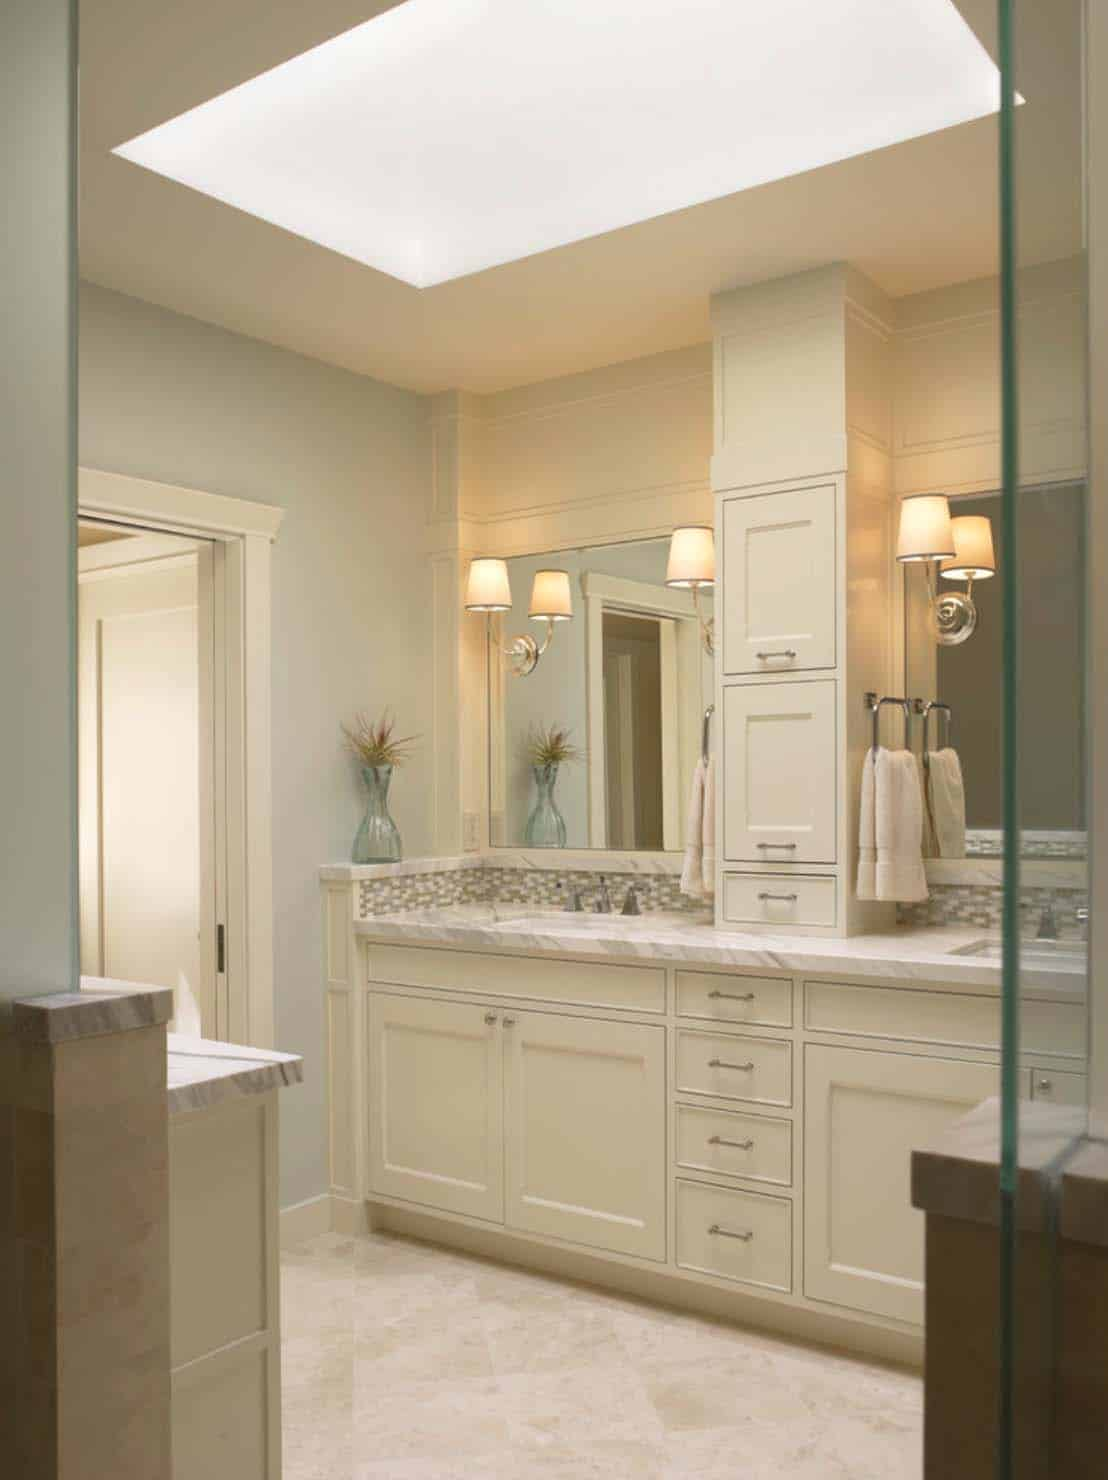 Traditional Bathroom Design Ideas-19-1 Kindesign